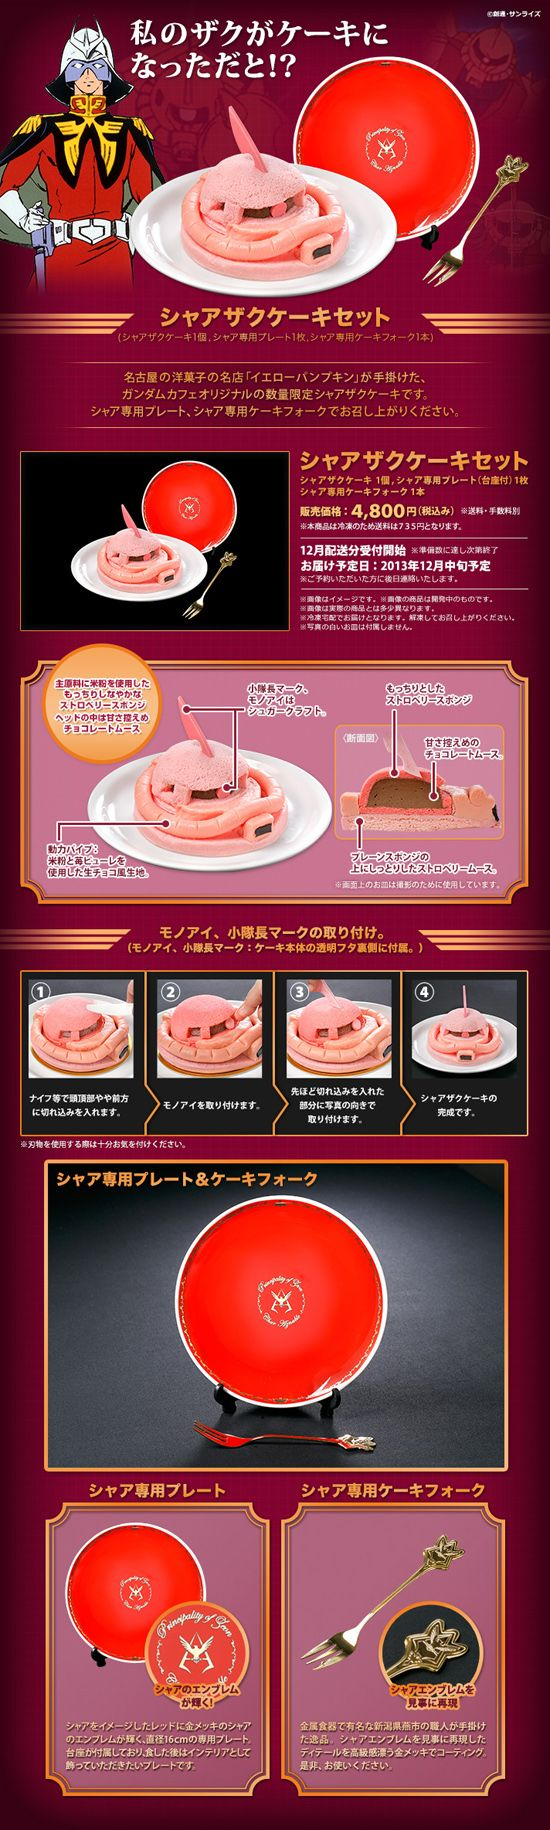 Gundam cake on the way for Christmas | via Otaku USA Magazine's Newsletter --> Not what I usually think of when I think of Christmas... :D